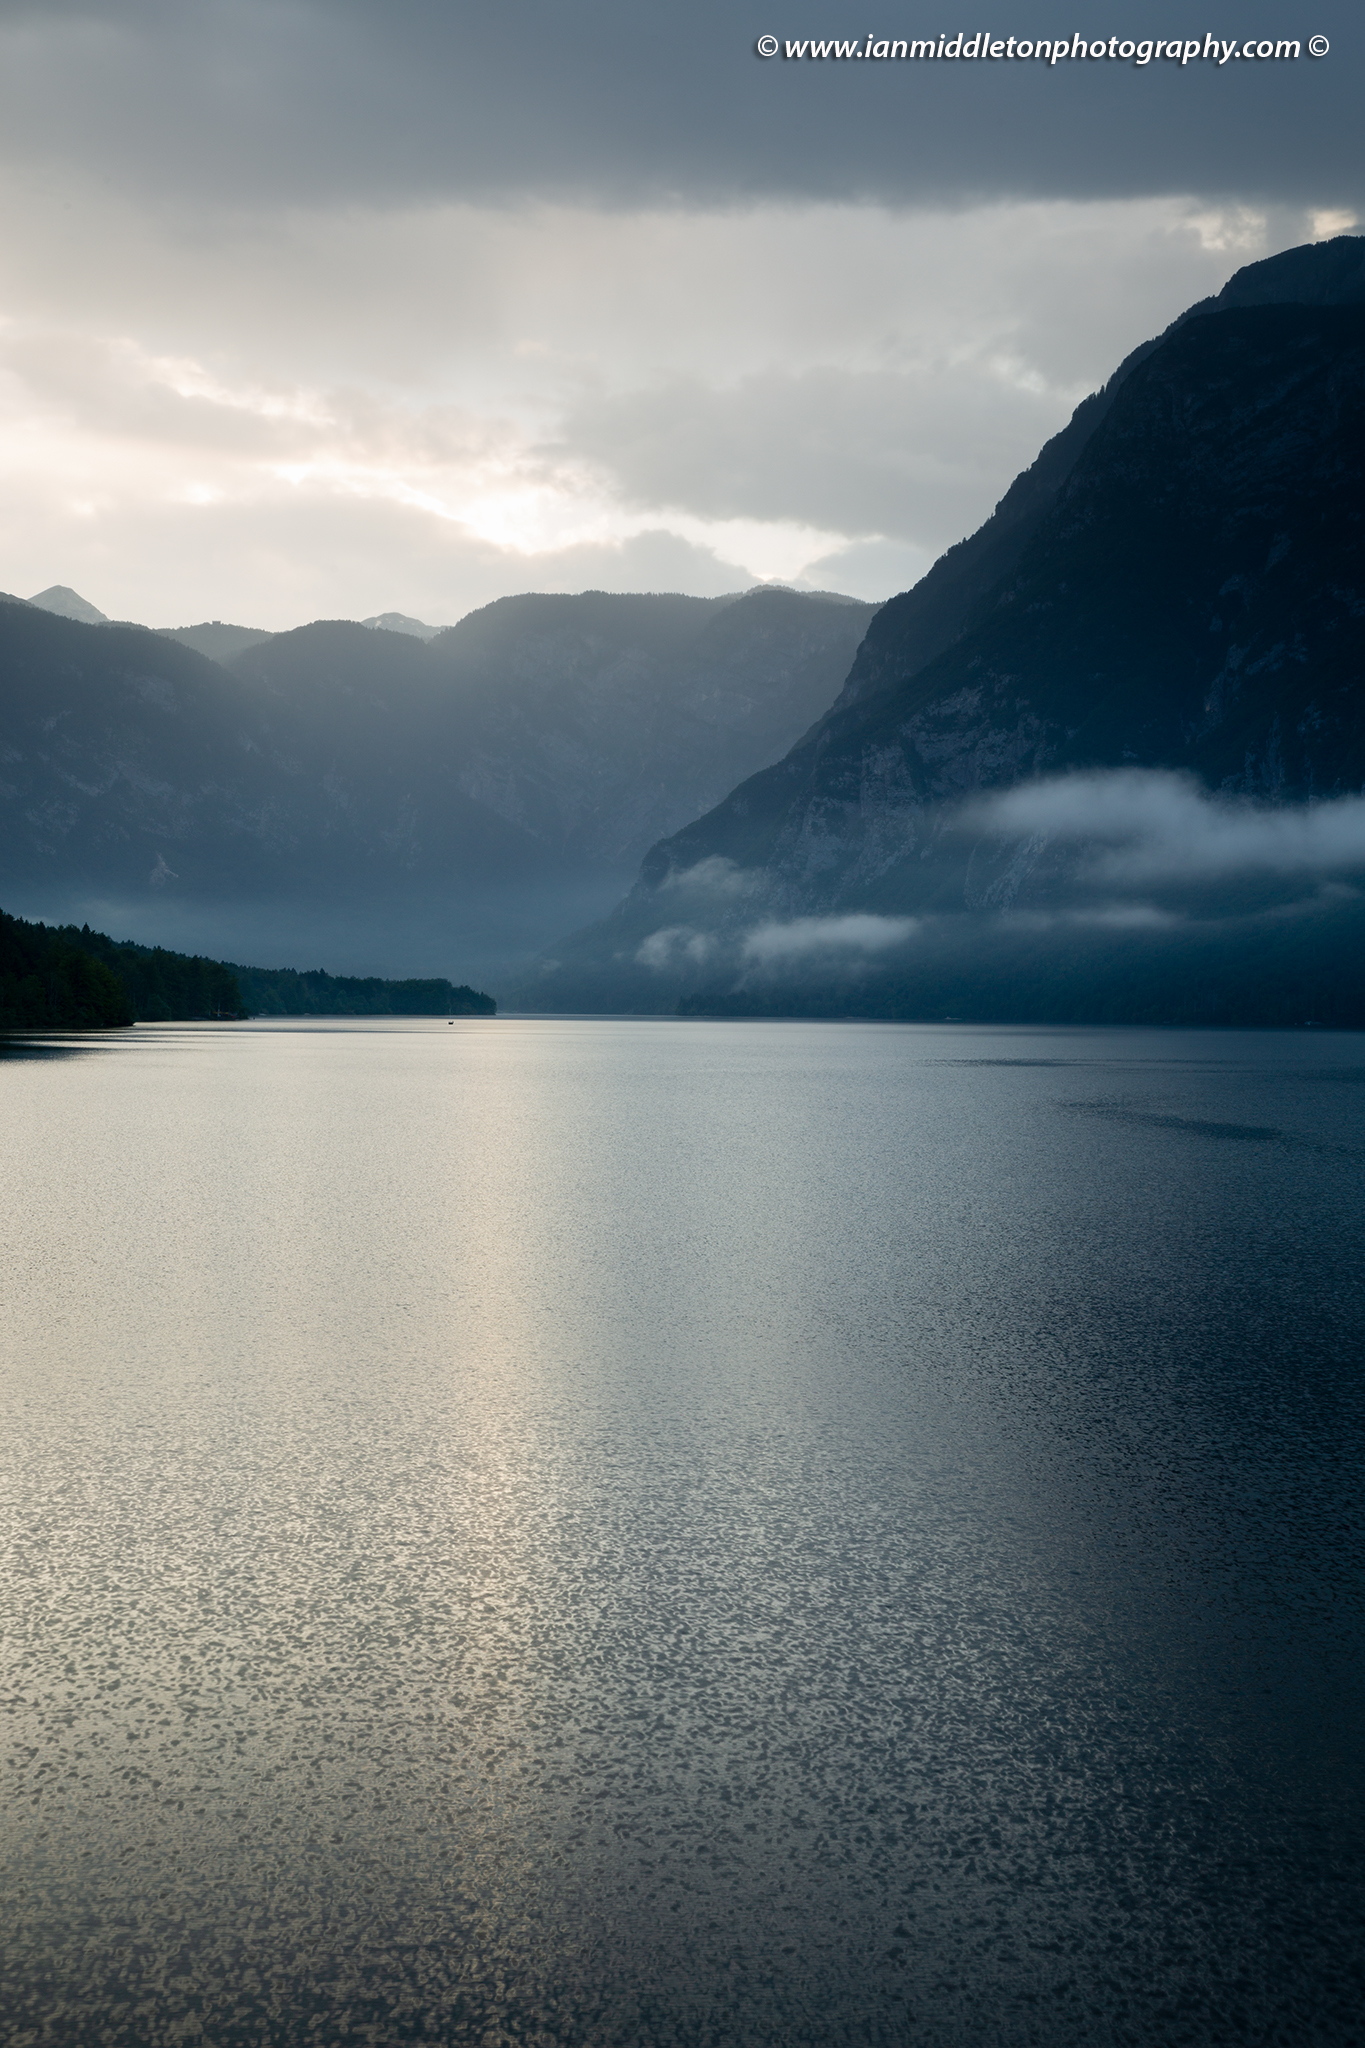 Rain over Lake Bohinj, Triglav National Park, Slovenia.